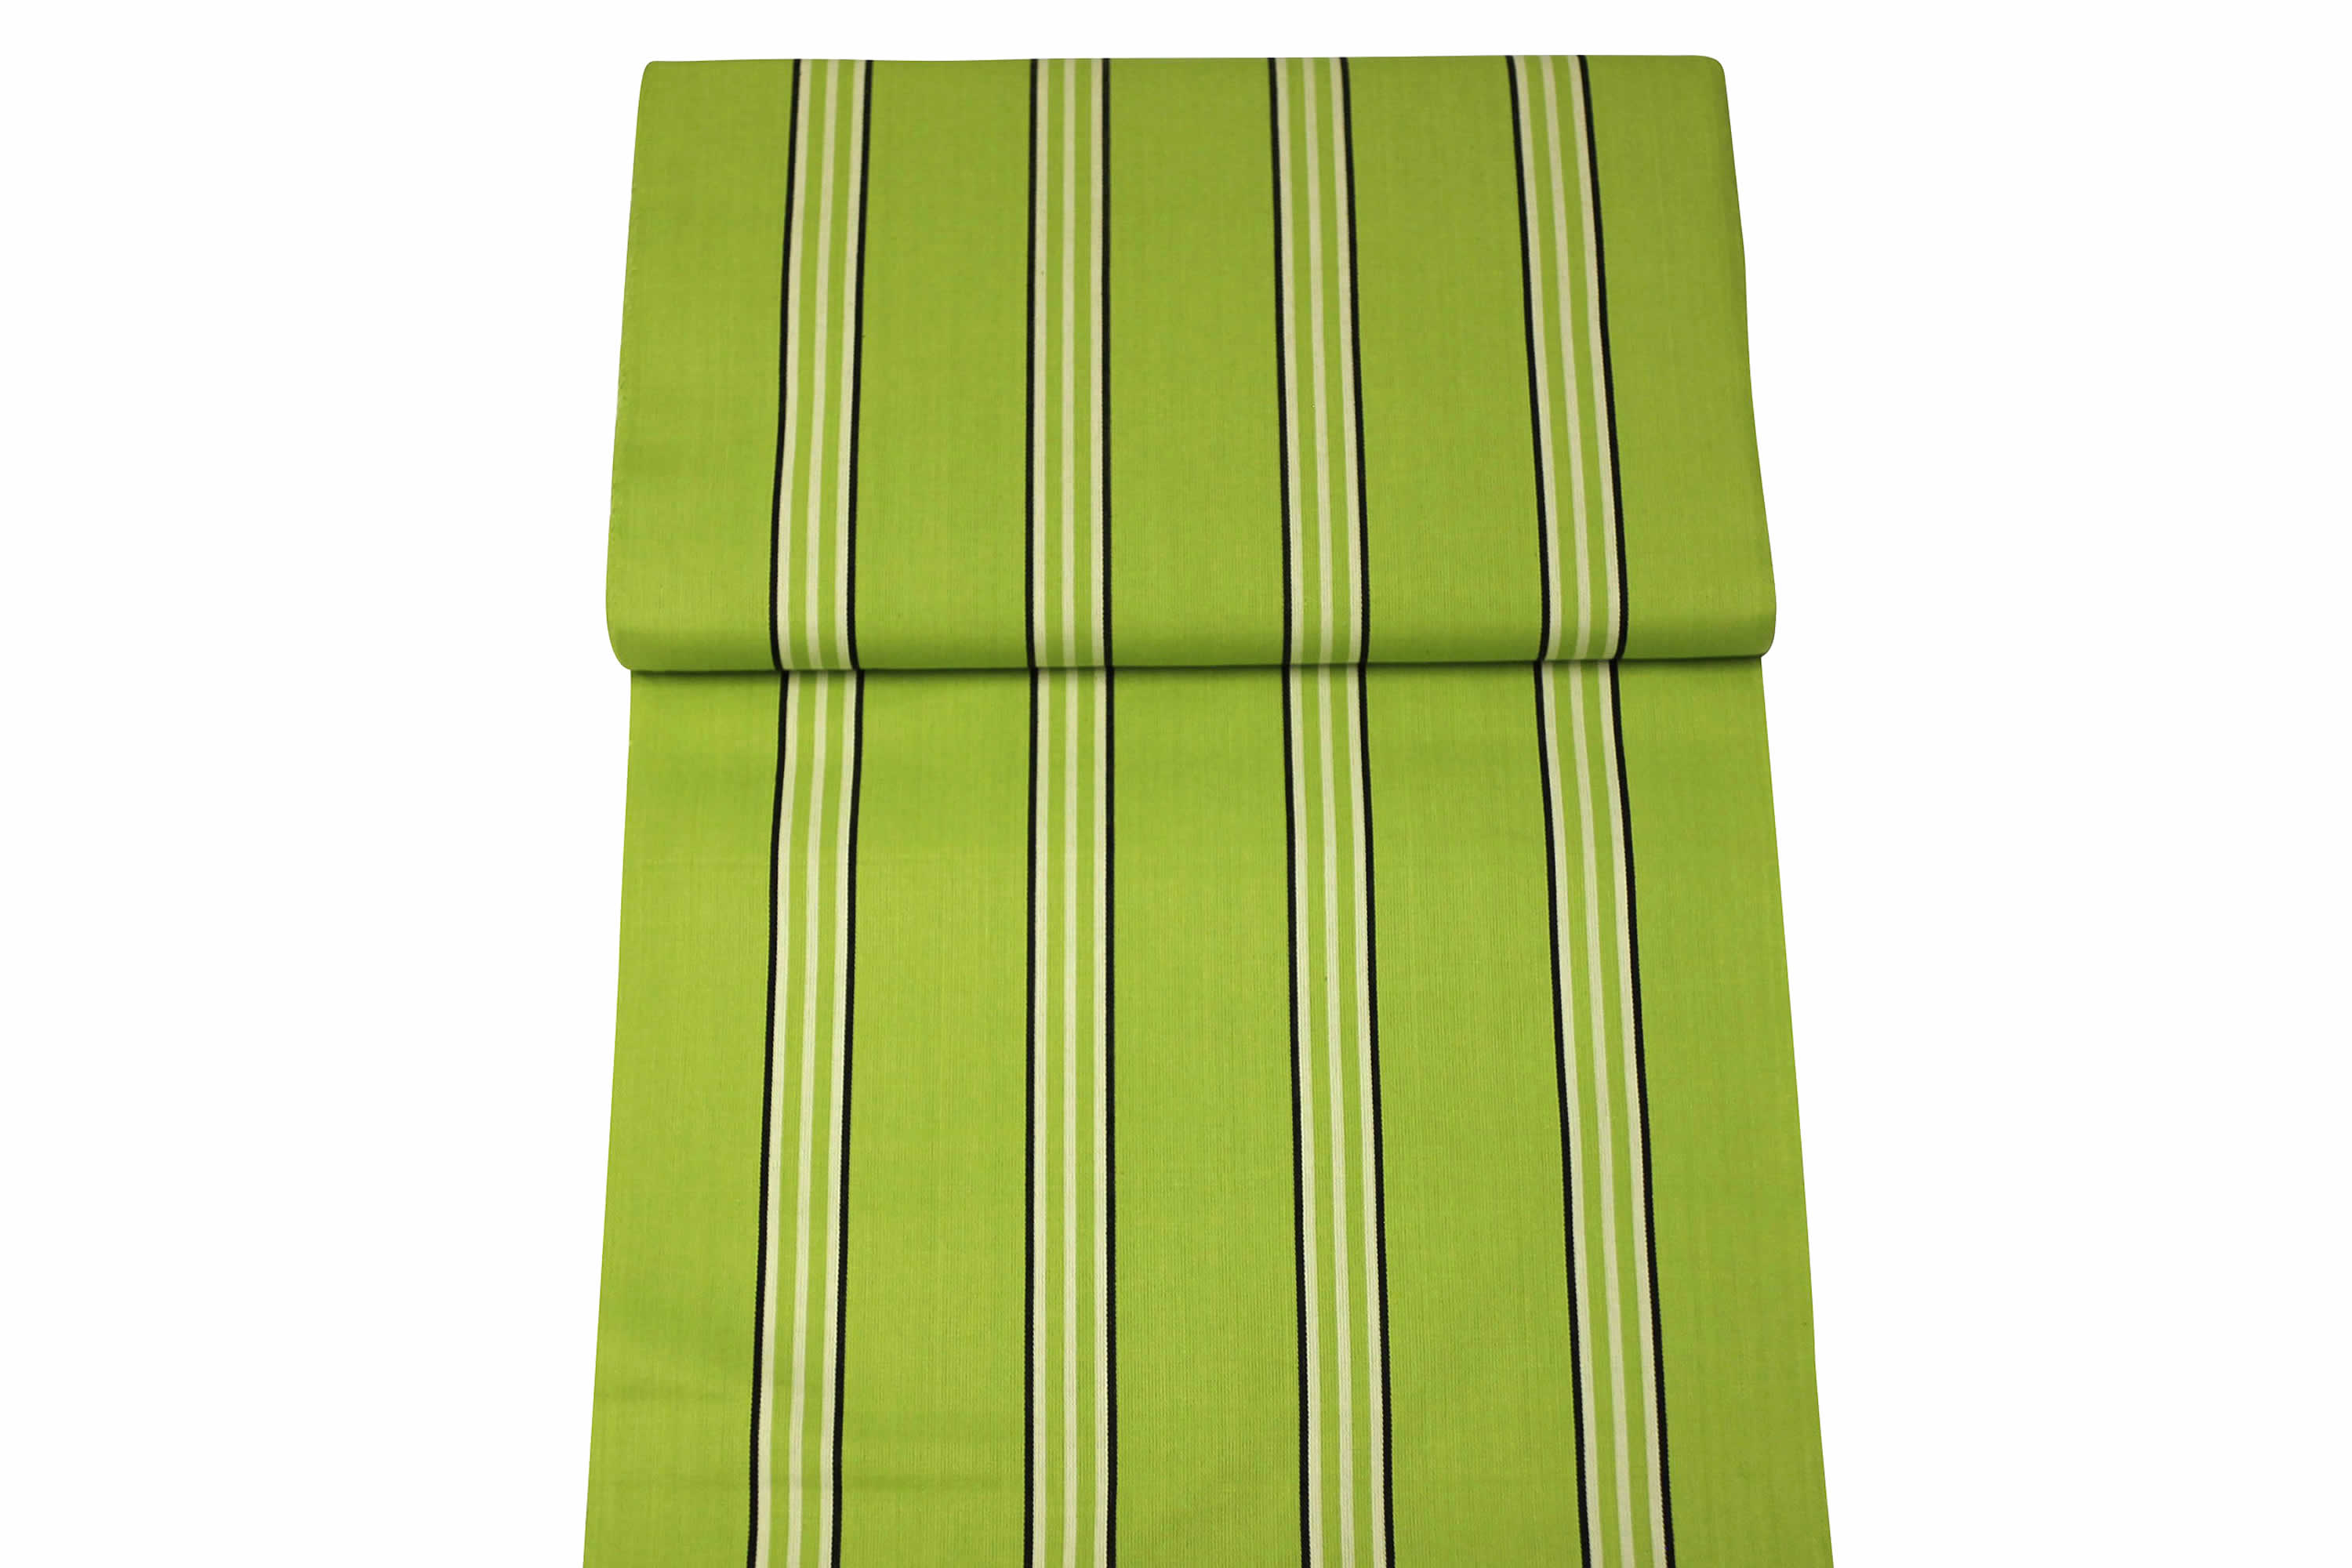 Lime Green Deckchair Canvas The Stripes Company Uk